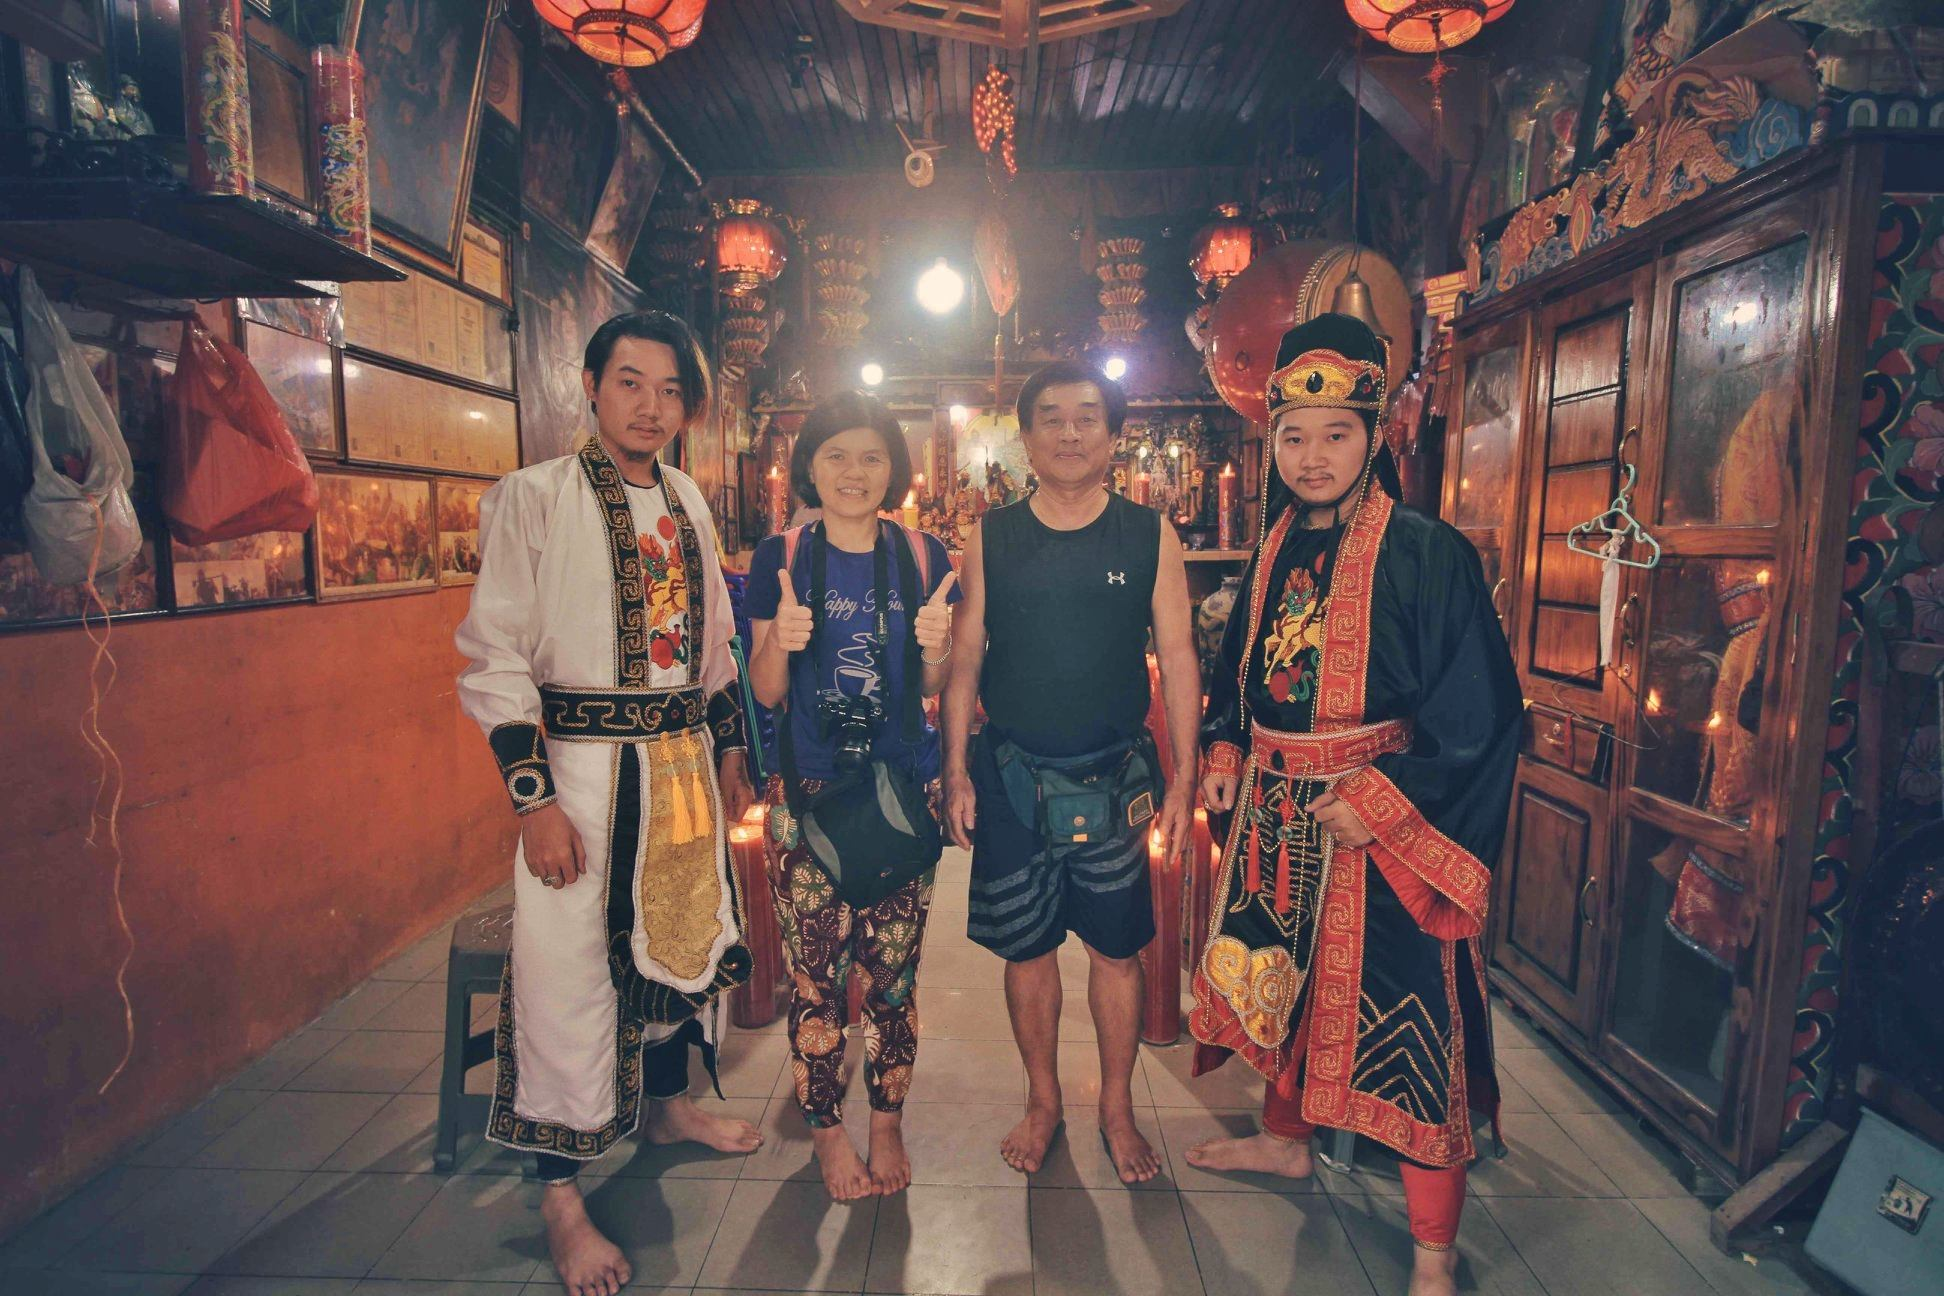 Tatung, medium, shaman, sifu, culture, wisata budaya, Tahun Baru Imlek, authentic, Indonesia, Kelenteng Chau Liu Nyian Shai, Tourism, tourist attraction, Trans Border, 跨境婆罗洲游踪, 印尼传统祭司乩童, 山口洋赵刘元帅庙